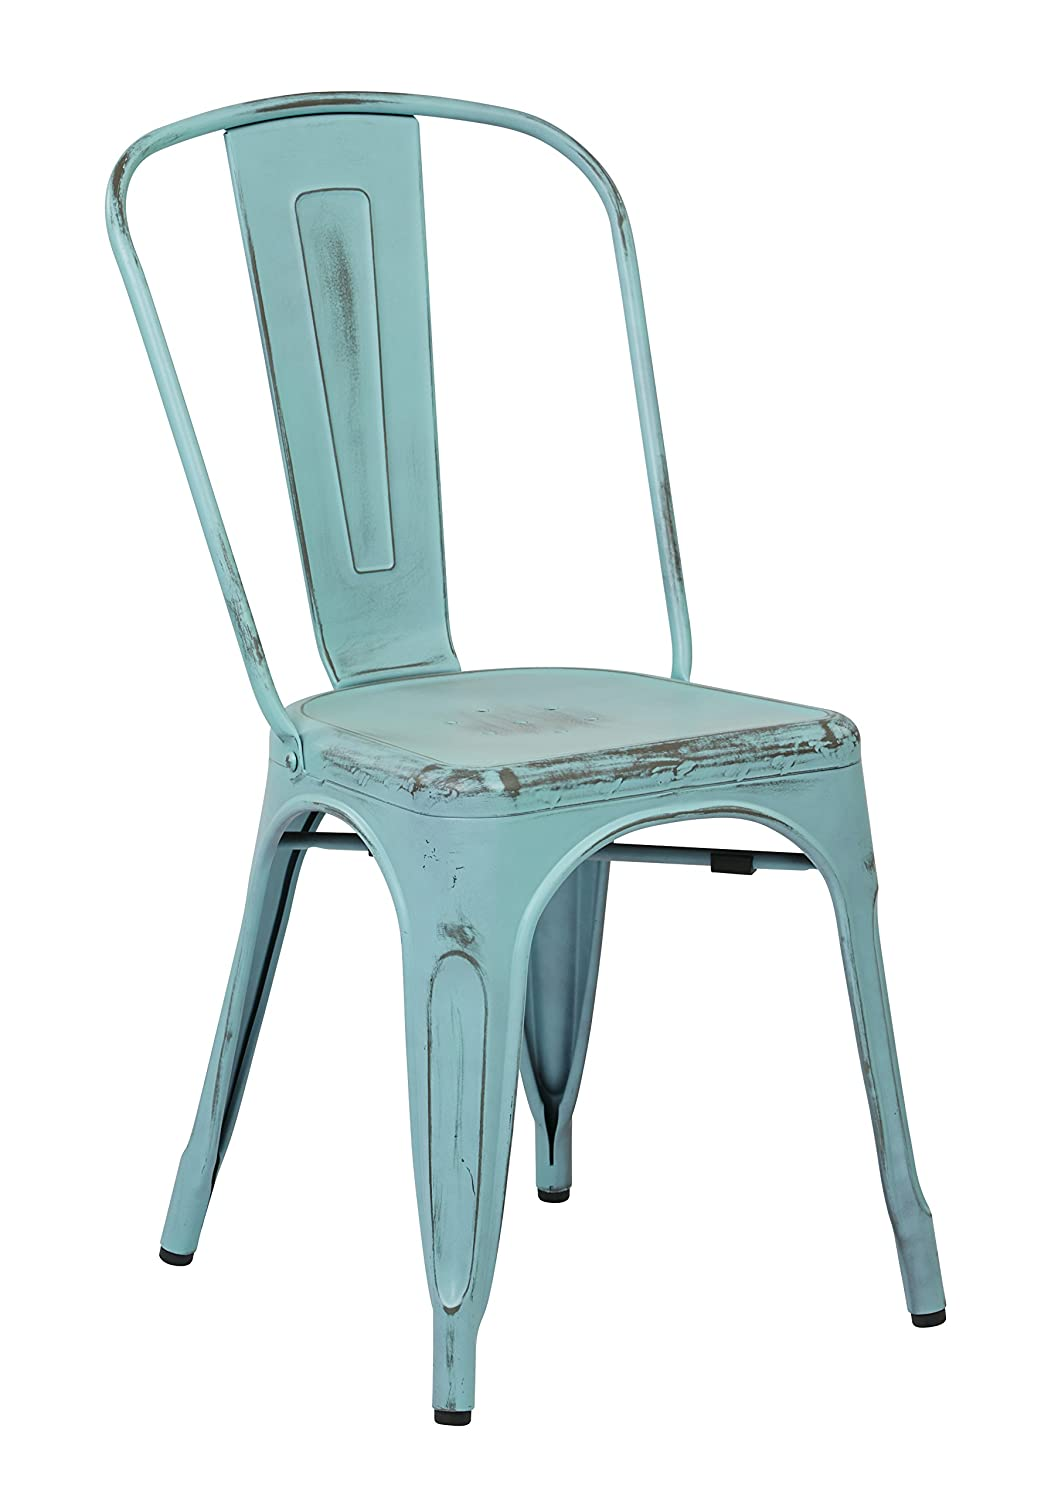 folding metal chairs products kuffalo chair